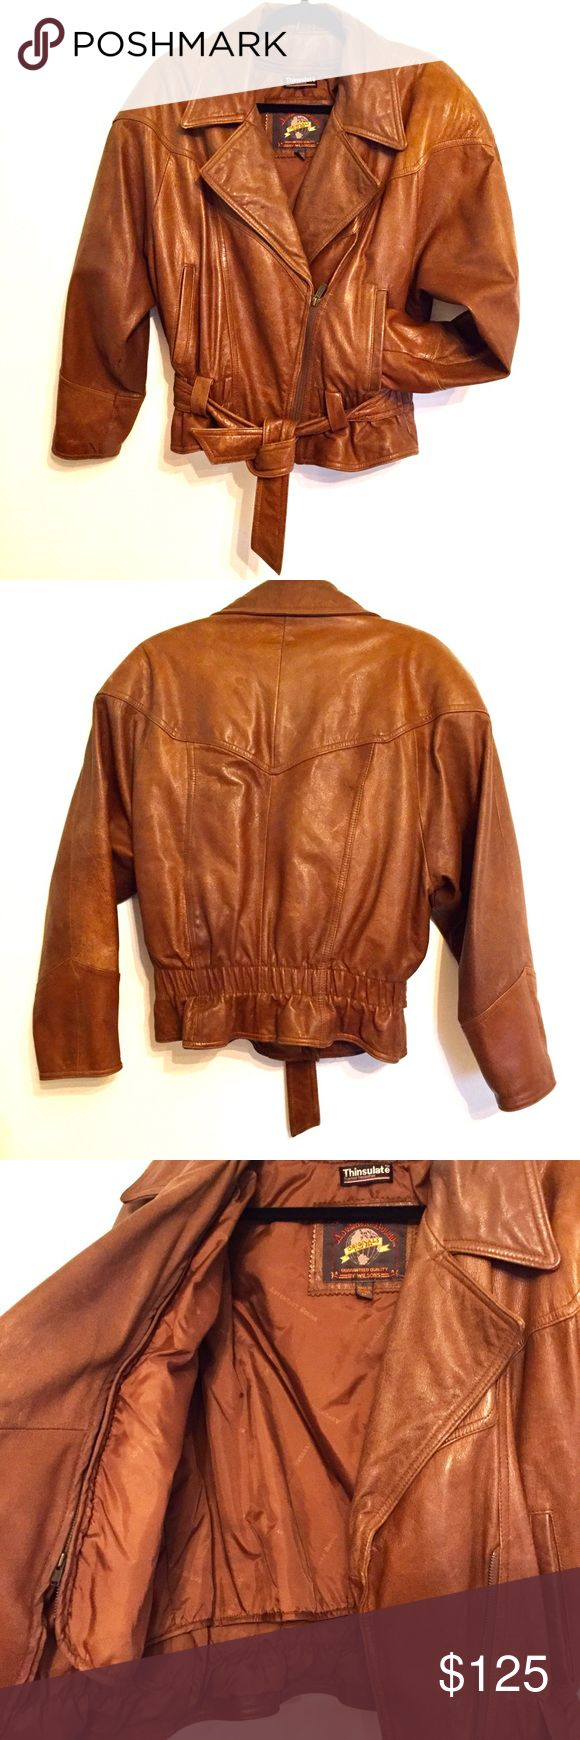 AdventureBound Thinsulator Wilson's Leather Jacket